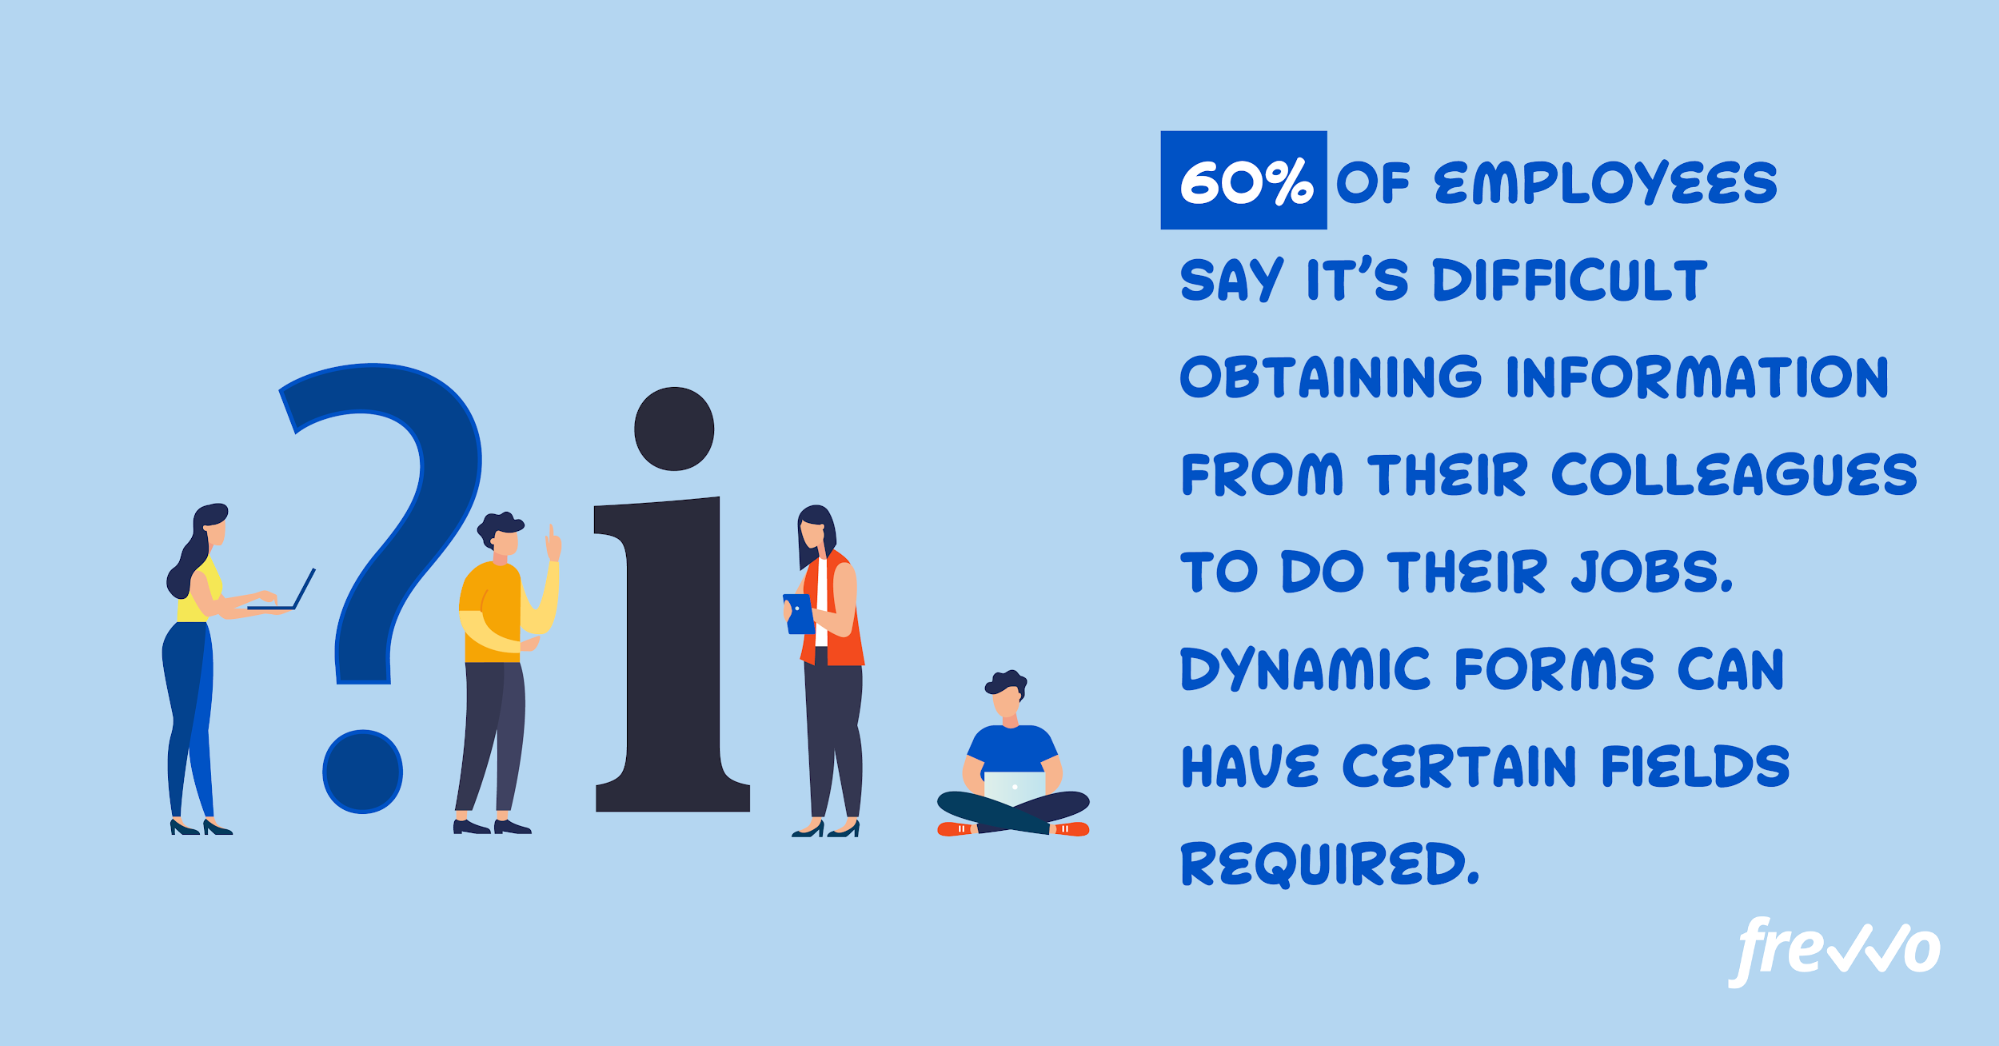 60% of employees say it's difficult getting information from colleagues